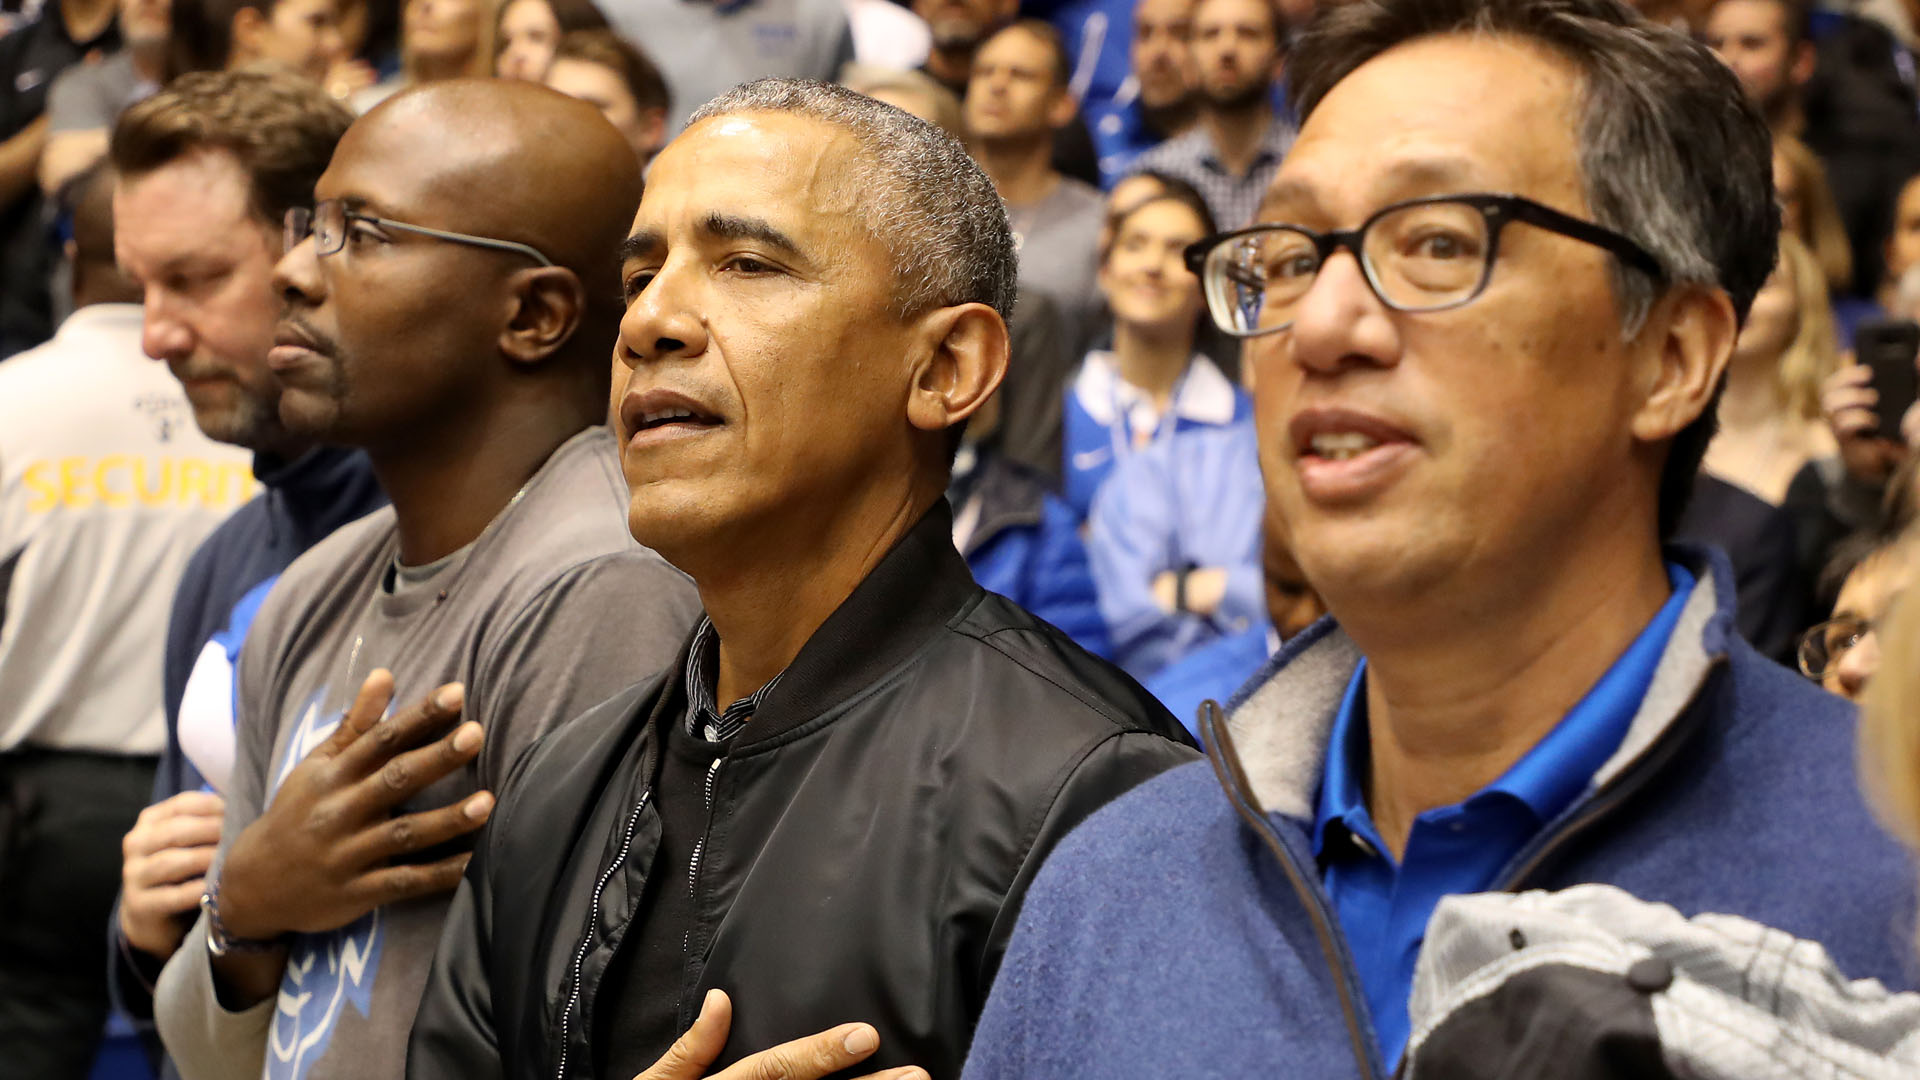 Barack Obama wishes Zion Williamson a 'speedy recovery'